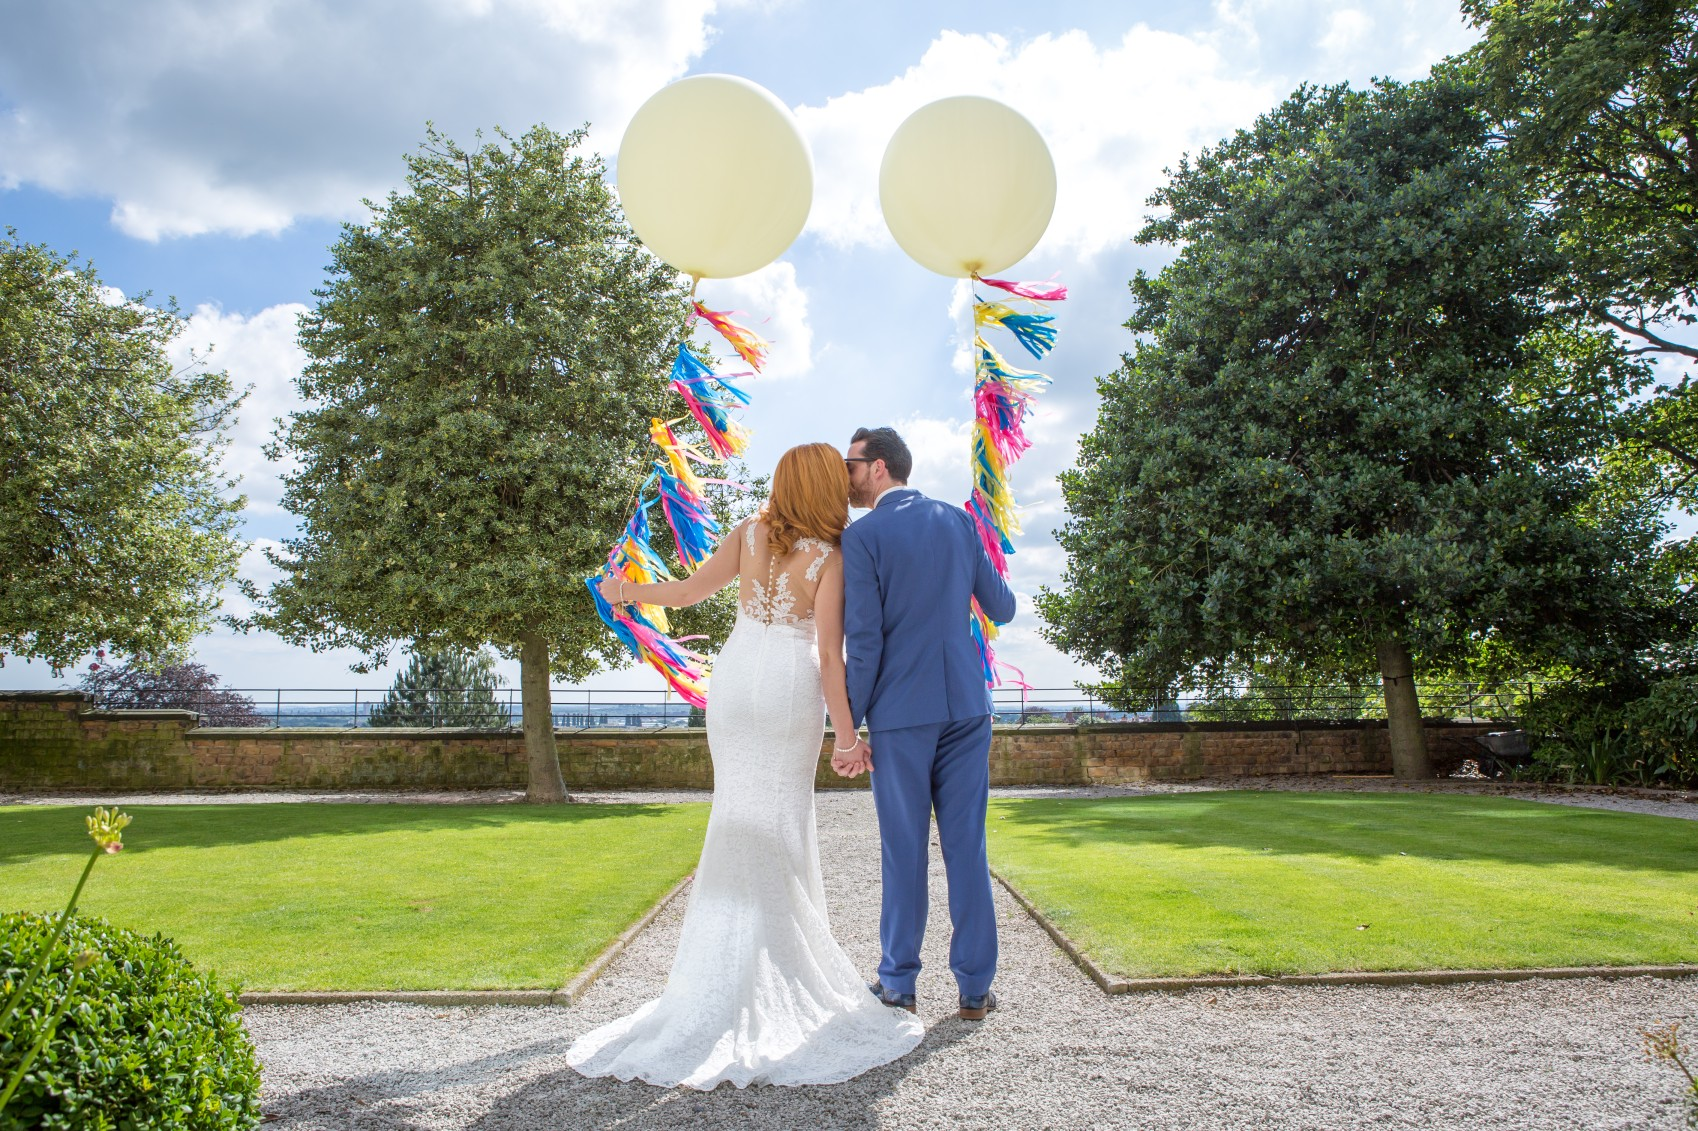 a colourful wedding - harts nottingham garden wedding - giant balloons at wedding - alterntive wedding planner